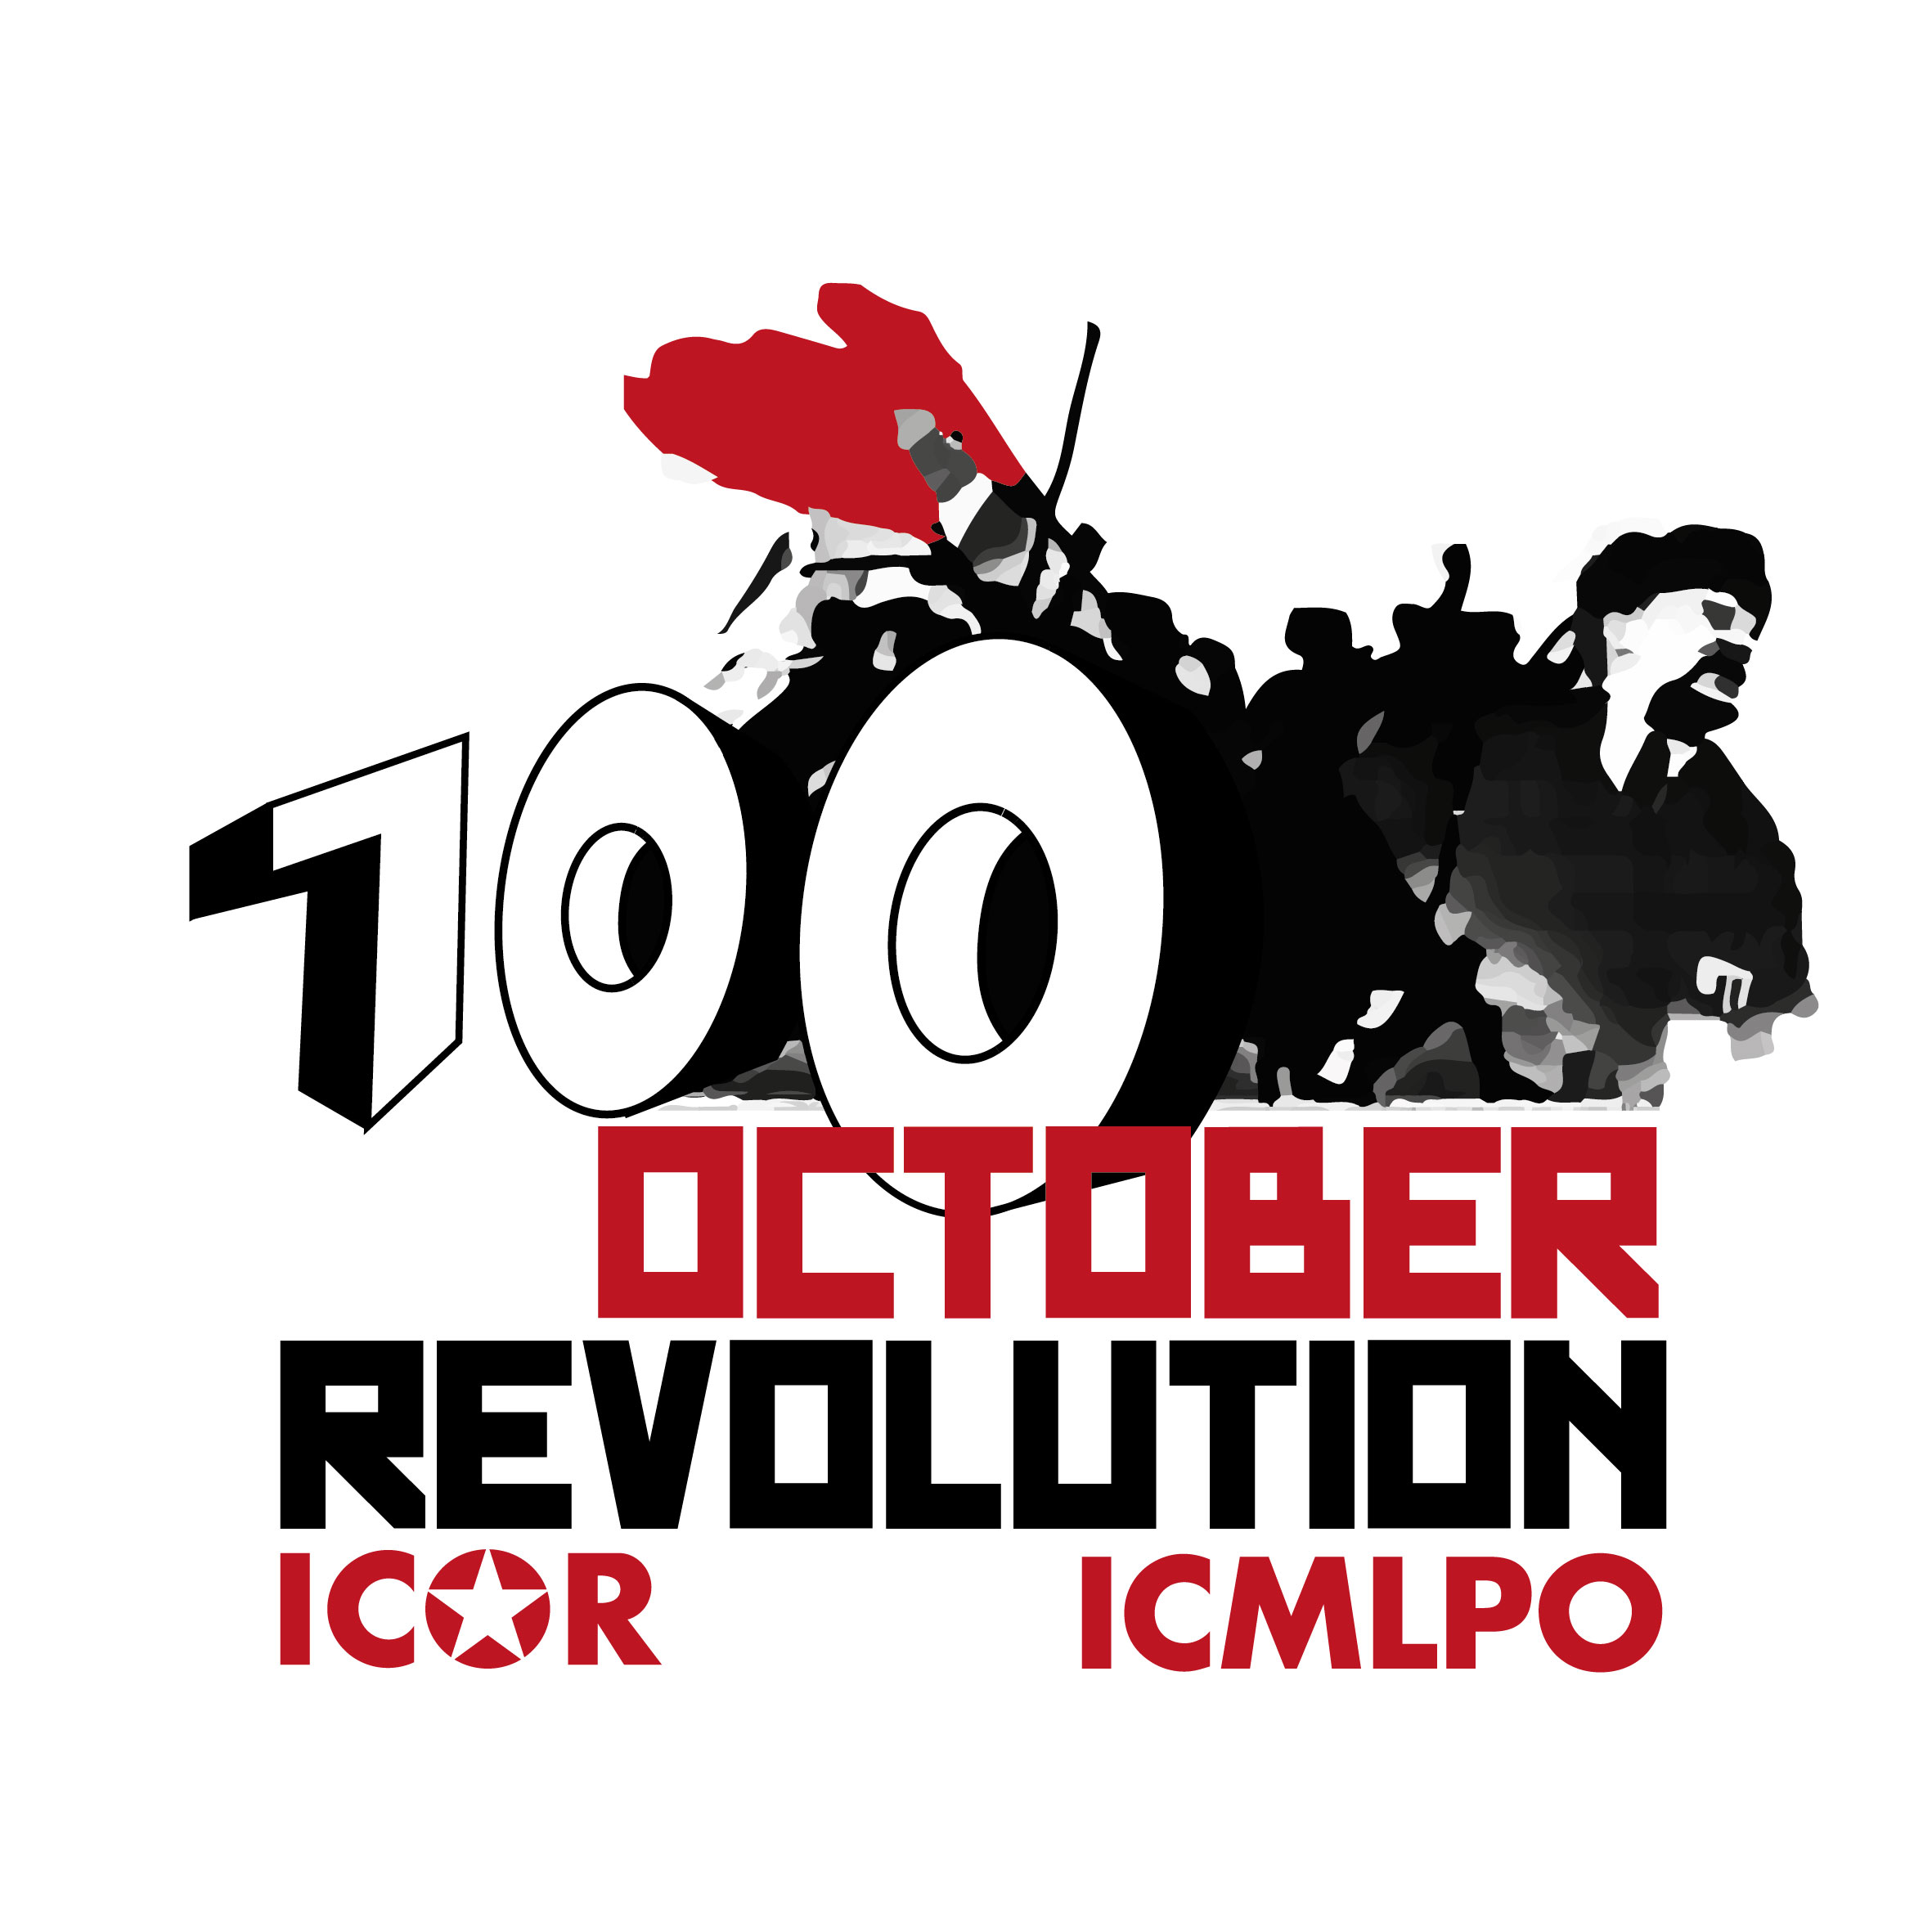 Up-to-date information on the seminar on theoretical and practical lessons of the October Revolution